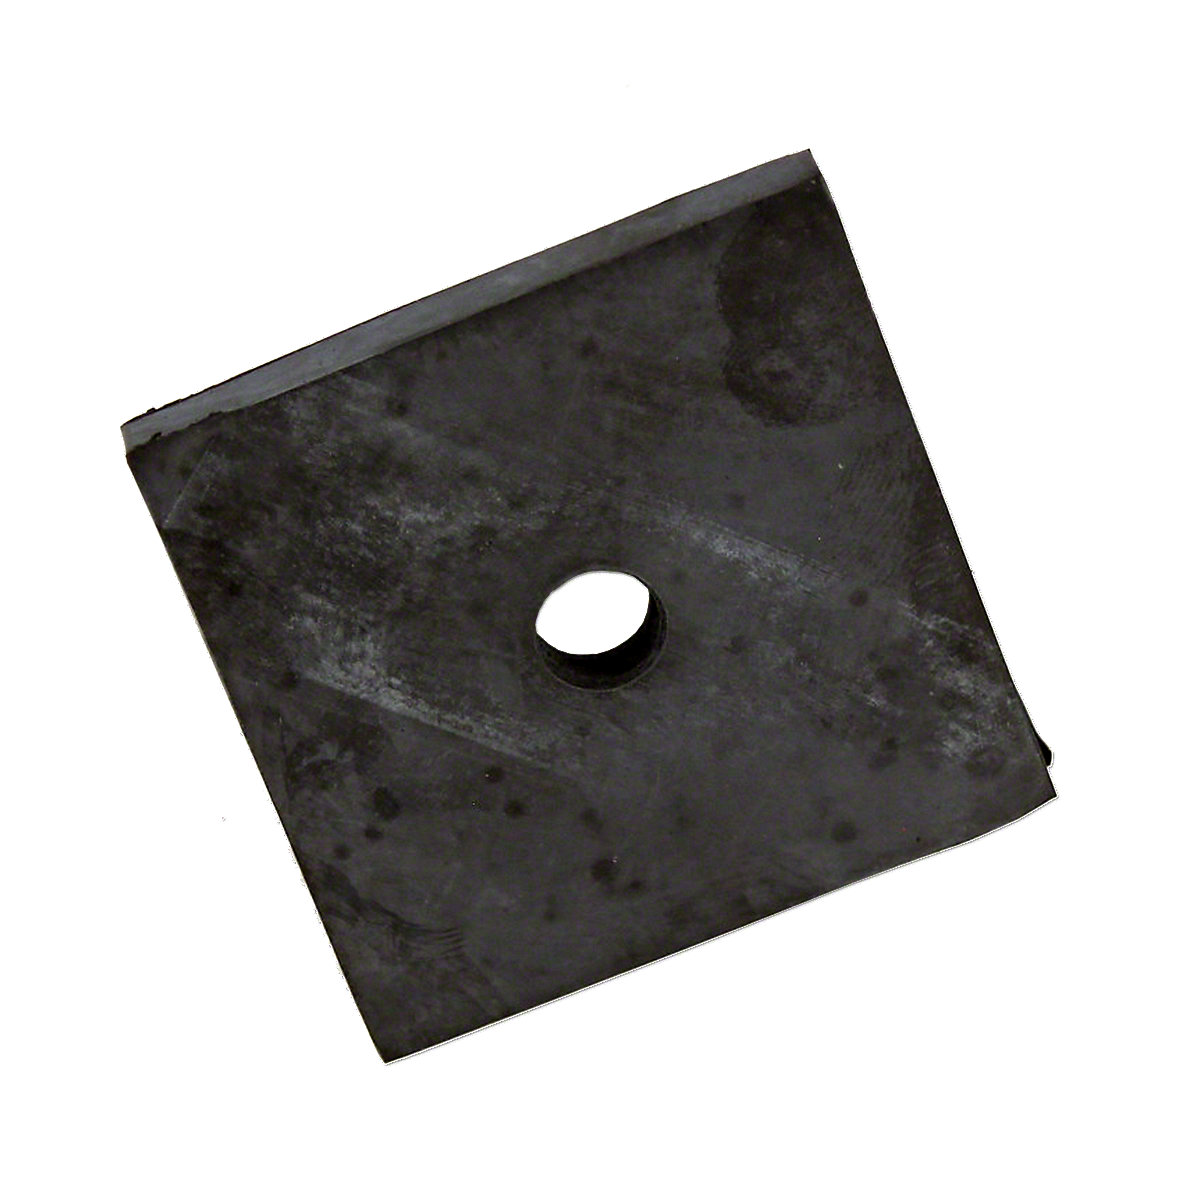 Radiator Mounting Pad For Allis Chalmers: B, C, CA, D10, D12, D14, D15, D17, D19, D21, WC, WD, WD45, WF